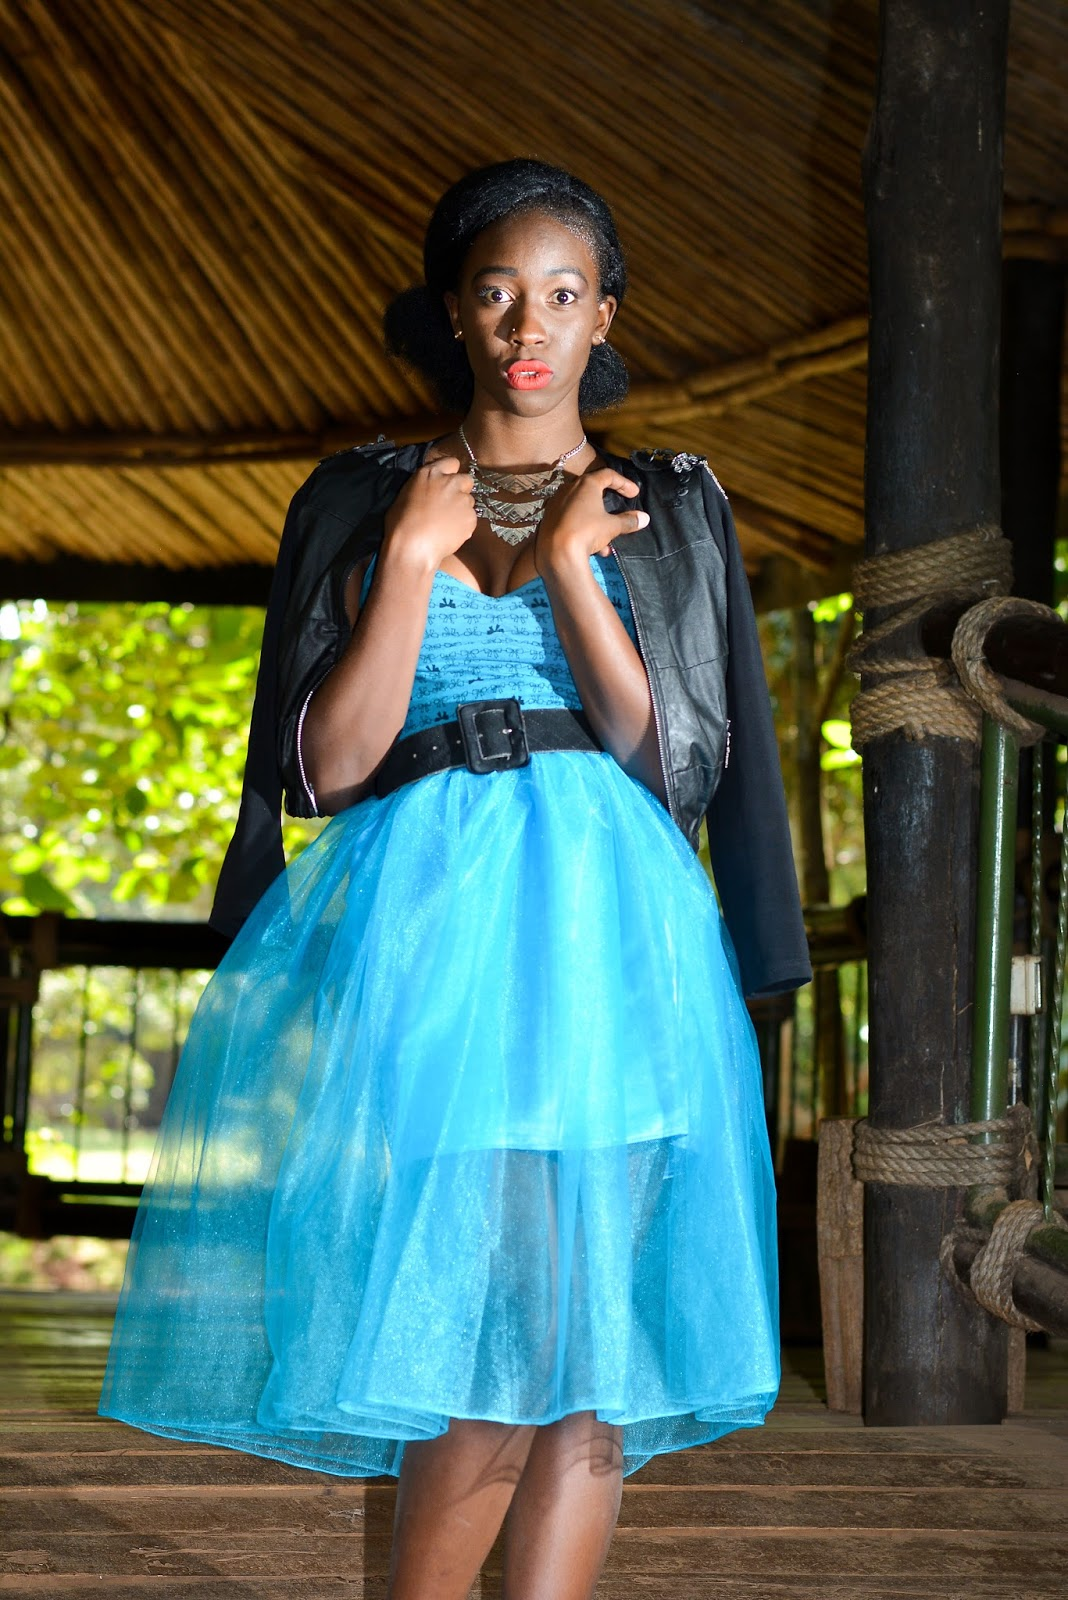 Cinderella, tulle skirts, how to style a tulle skirt, how to wear a tulle skirt, African fashion blogger, Kenyan fashion blogger, Ezil, style With Ezil, faux leather jacket outfit.